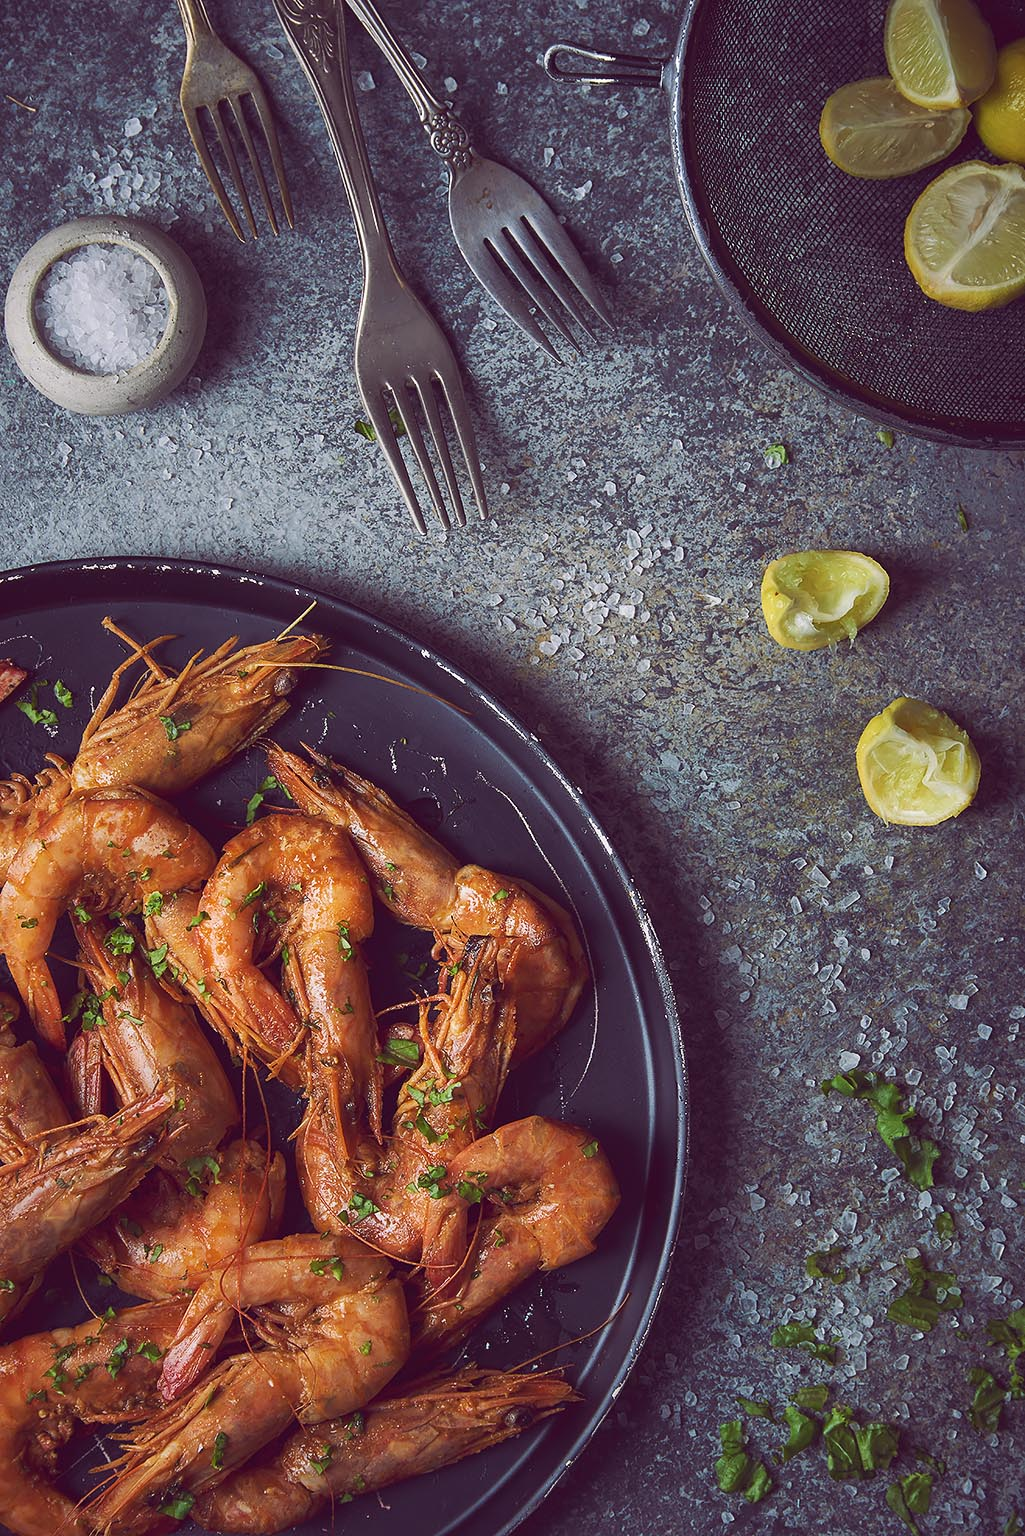 Shrimps - personal food photography project